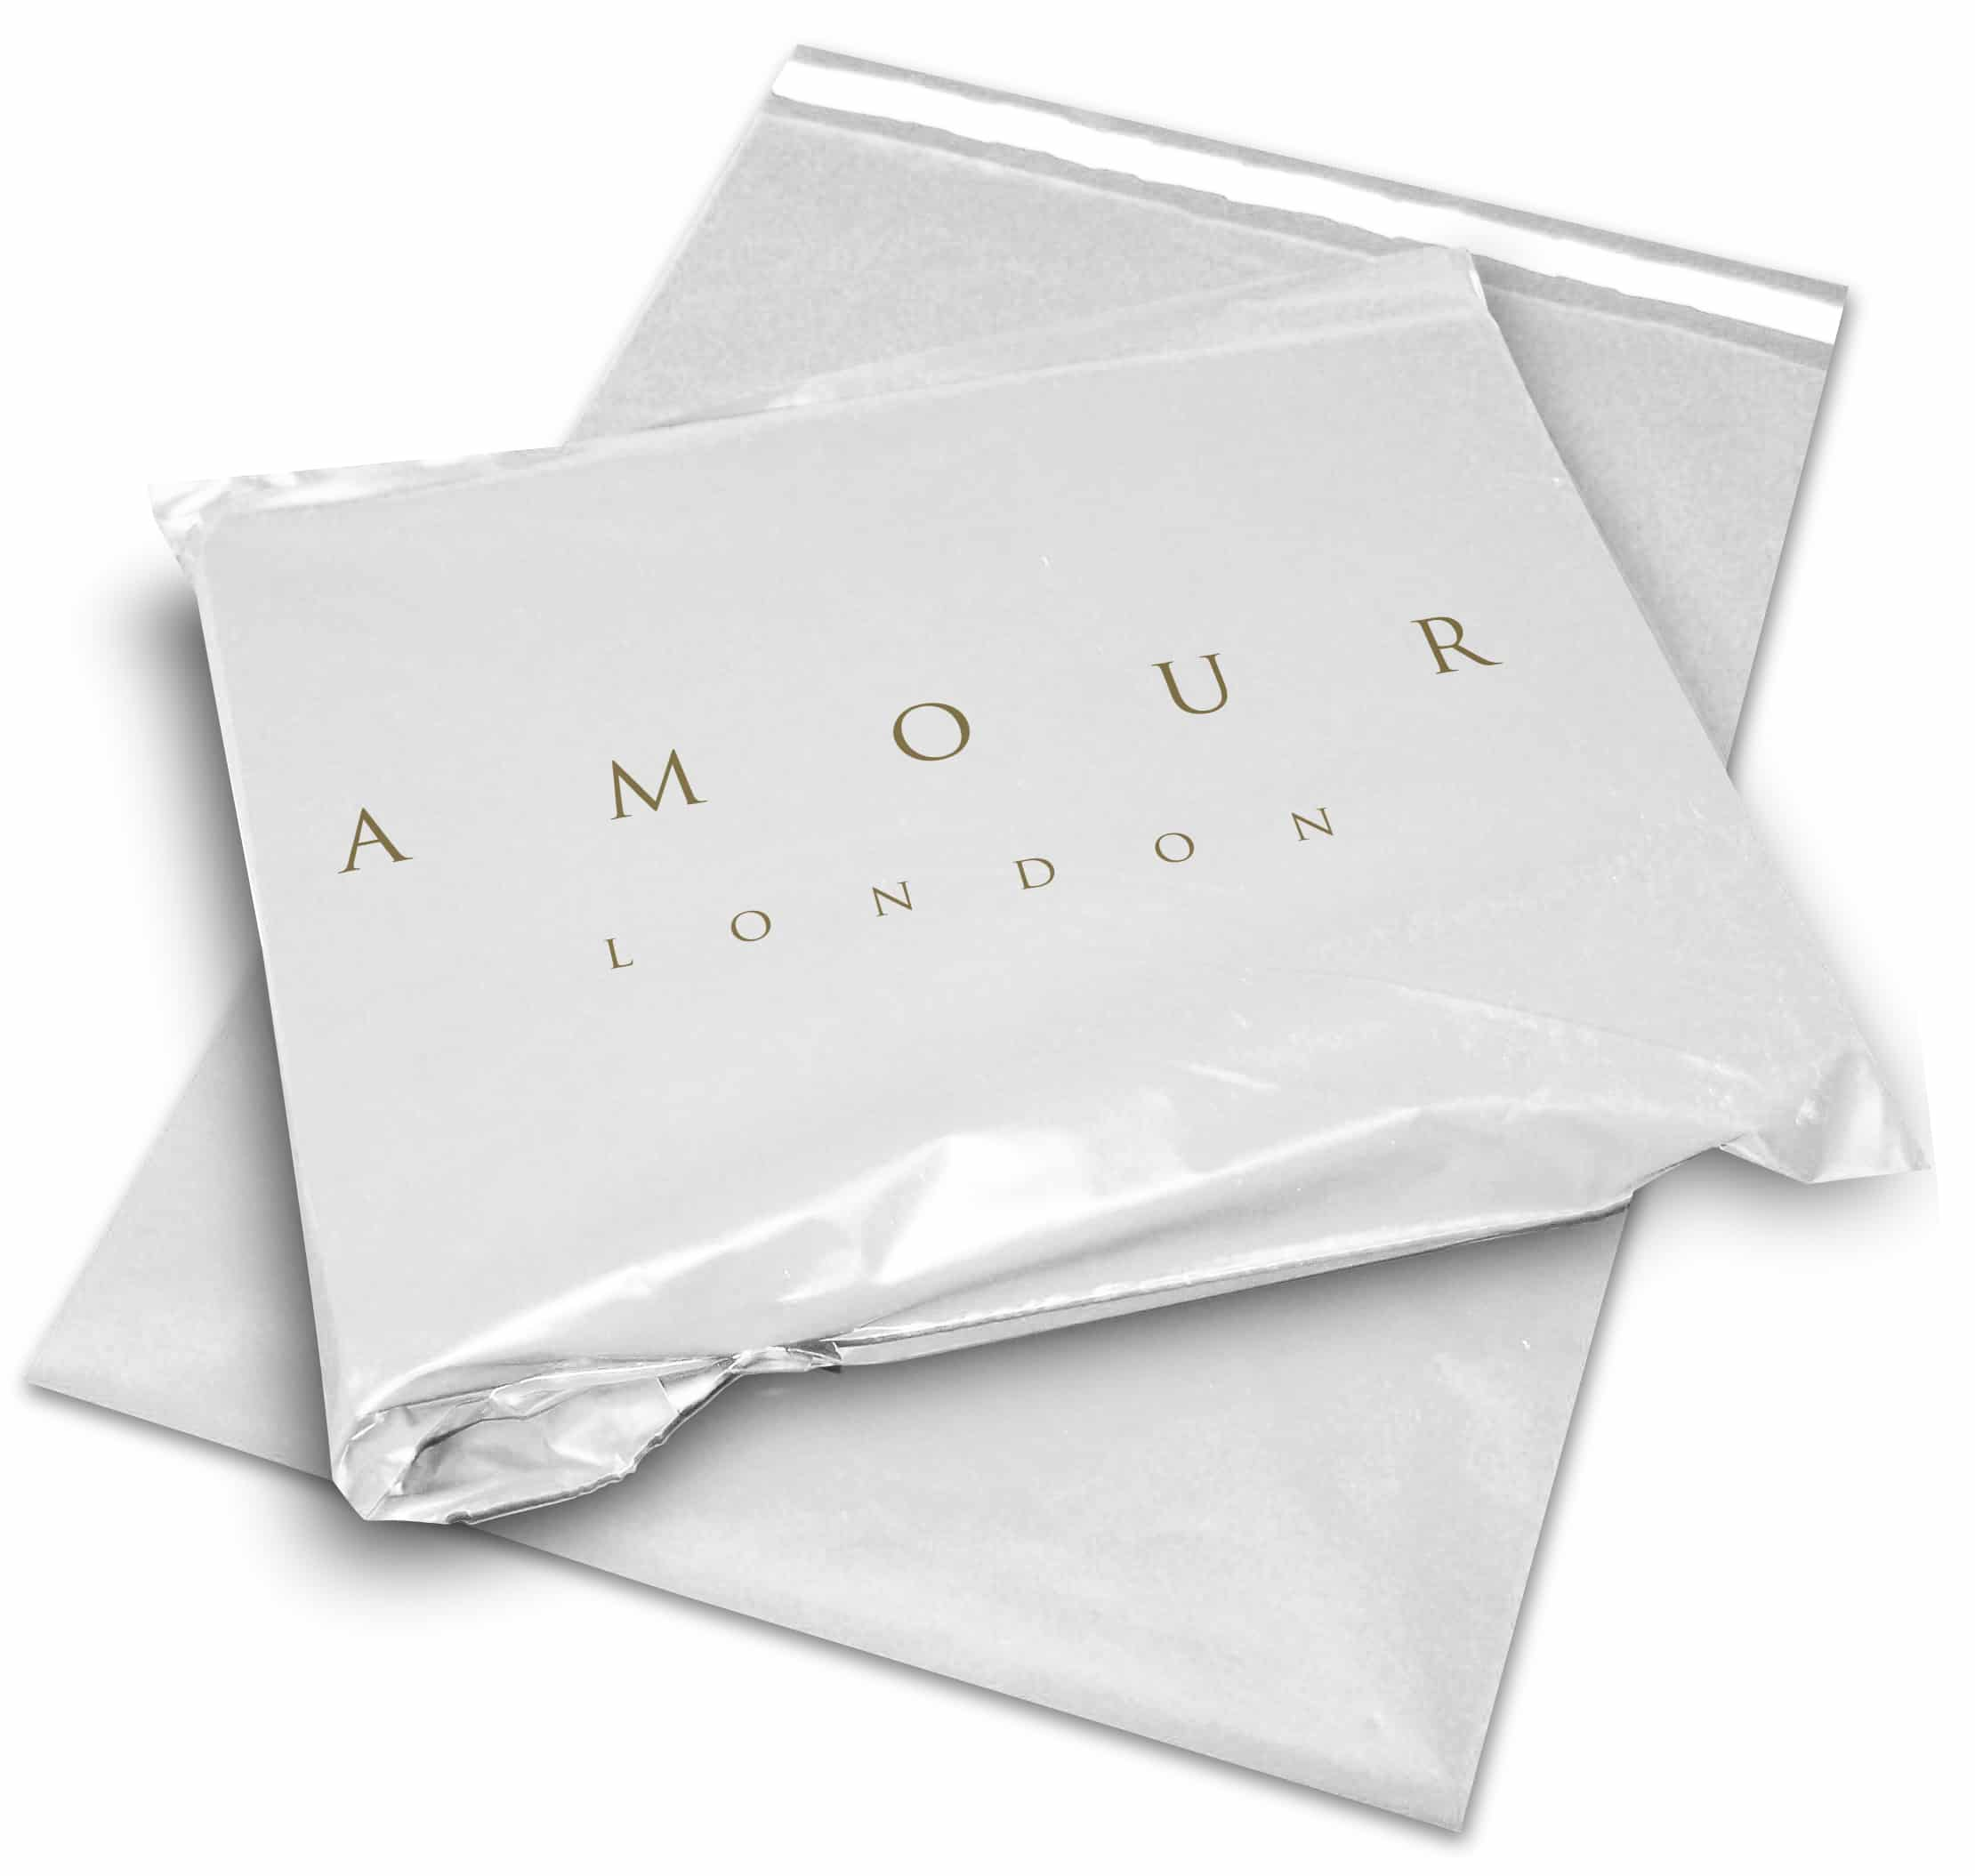 Amour London printed mailing and postal bag